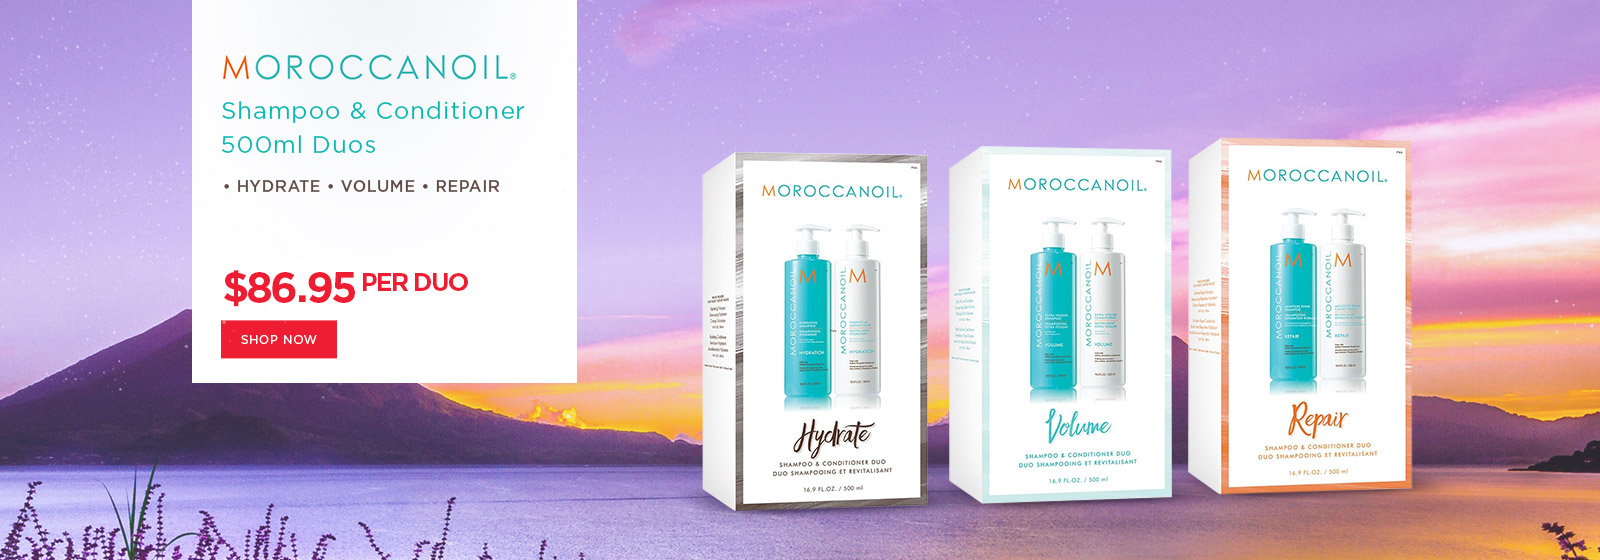 Moroccanoil 500ml Shampoo & Conditioner Duos Hydrate Repair Volume at Catwalk Australia